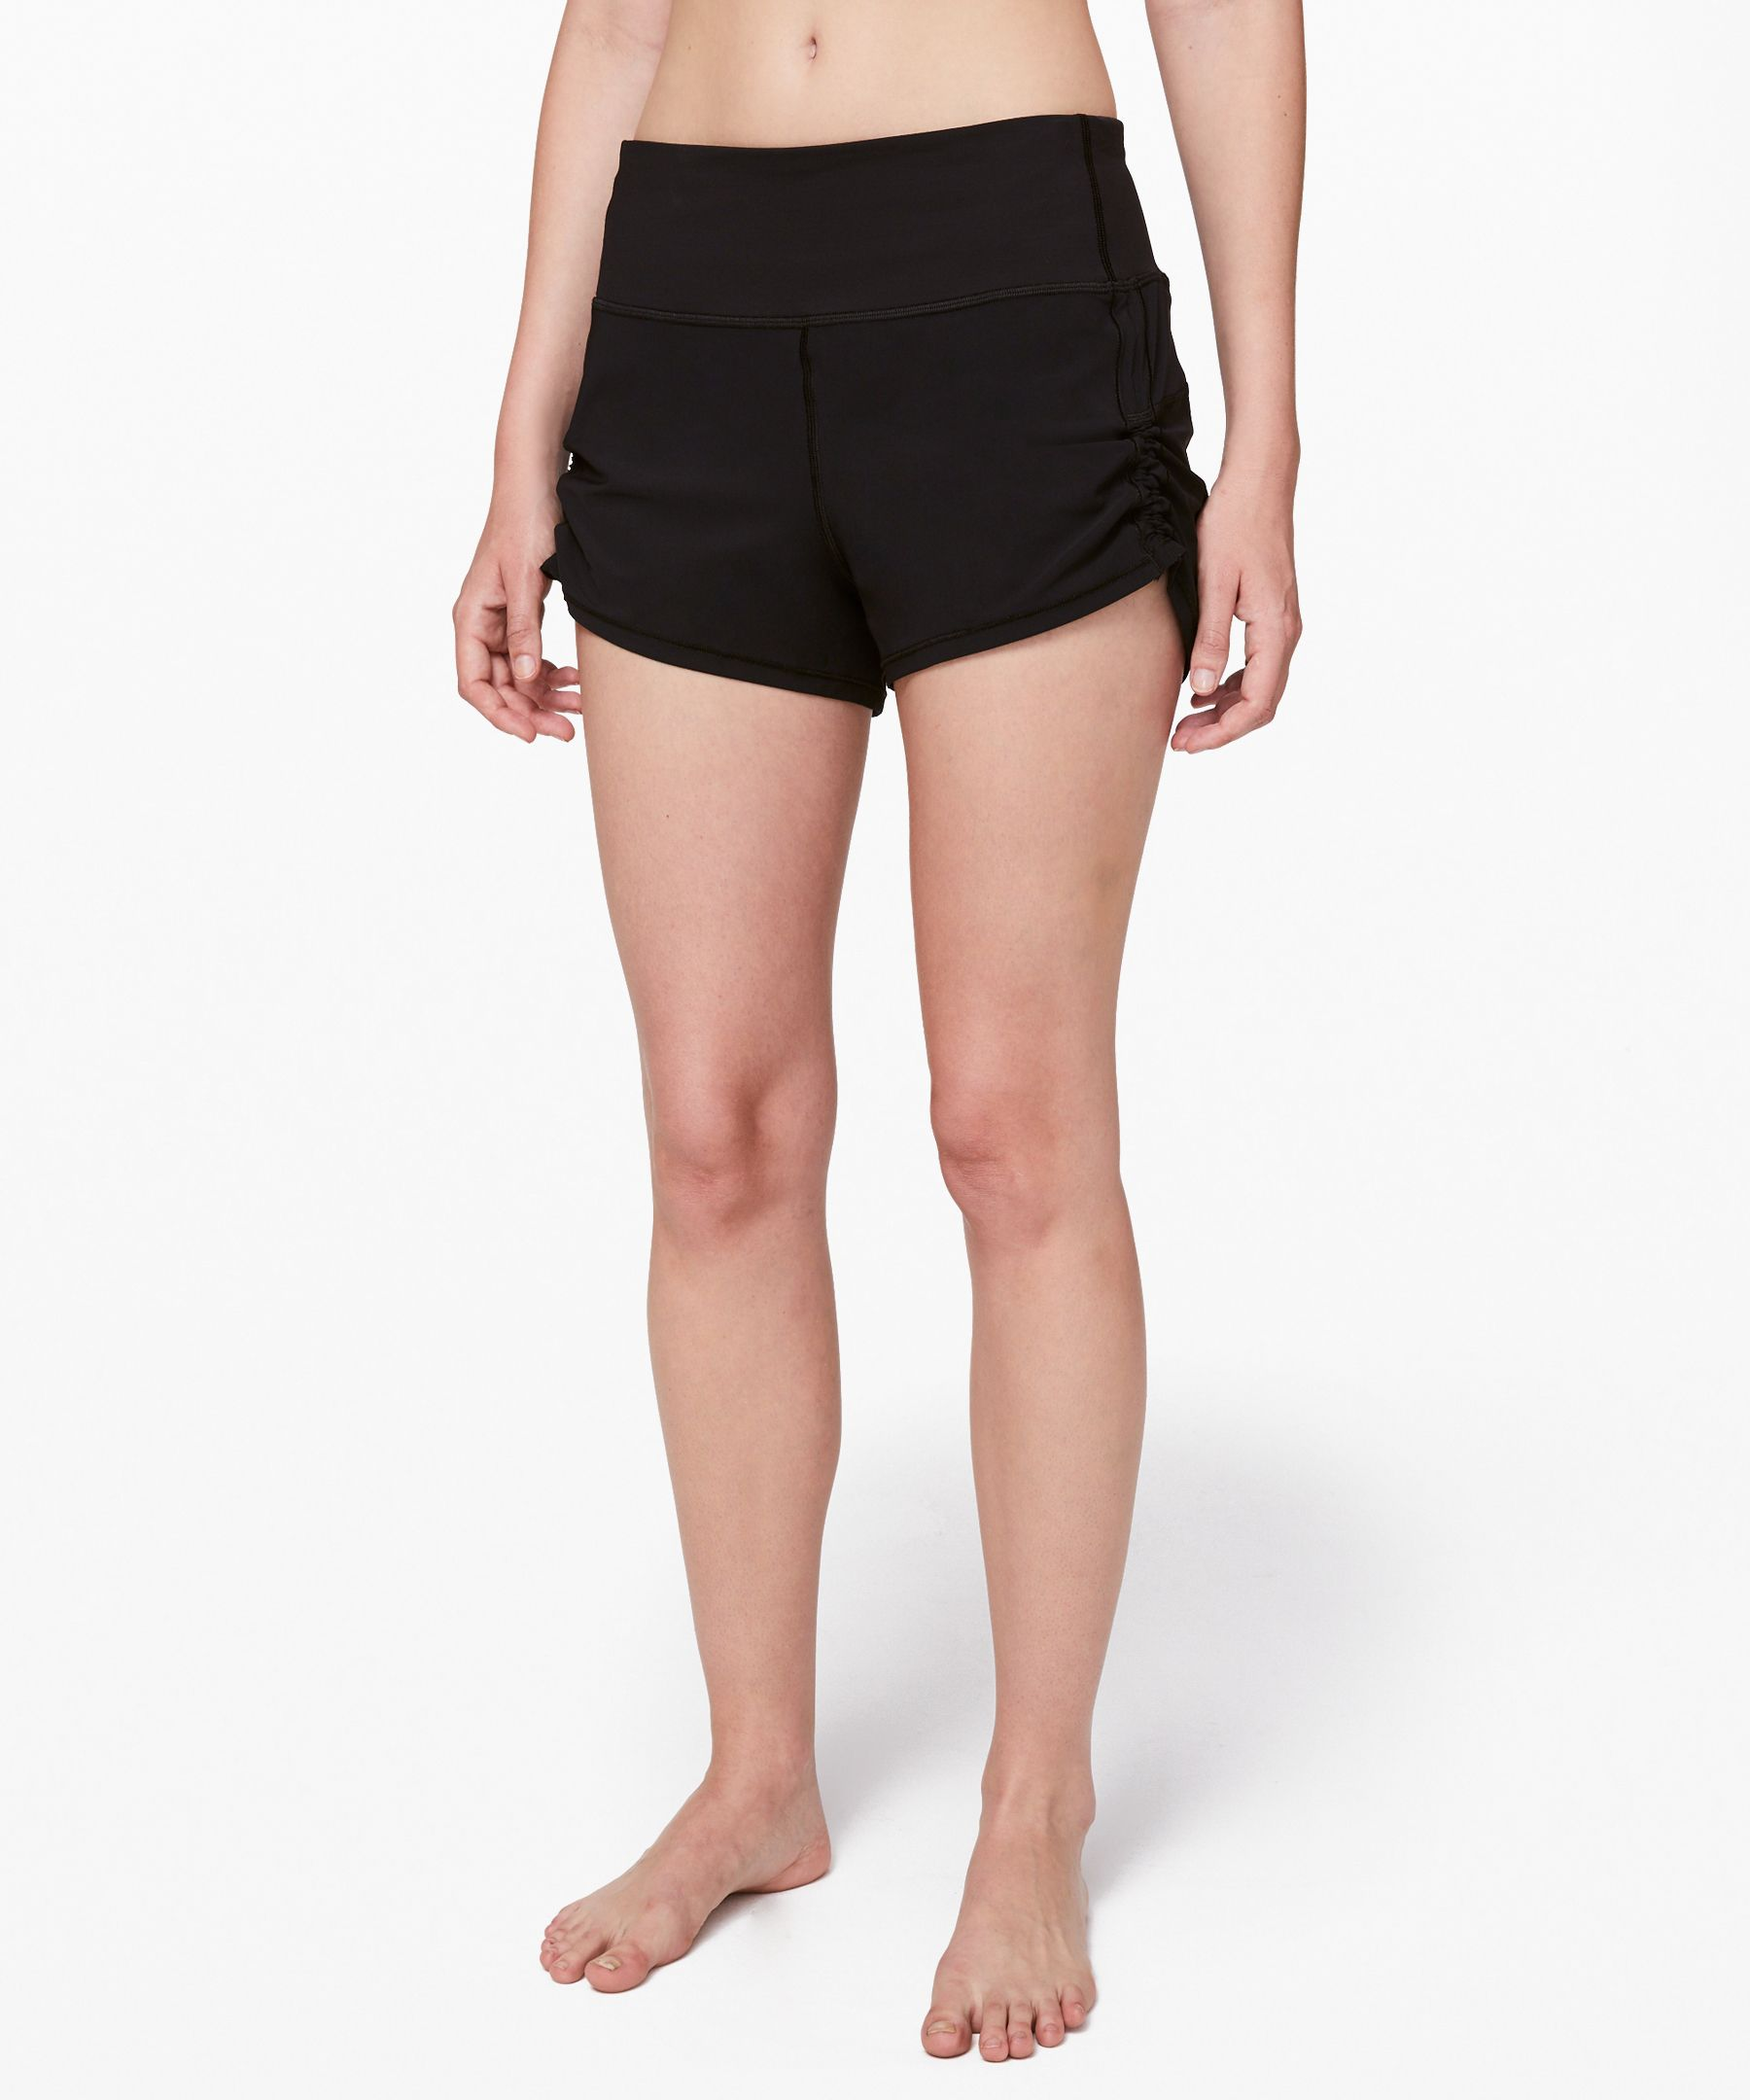 Femmes Pour StretchShorts Lululemon Short Athletica Cinch And edxrWCBo